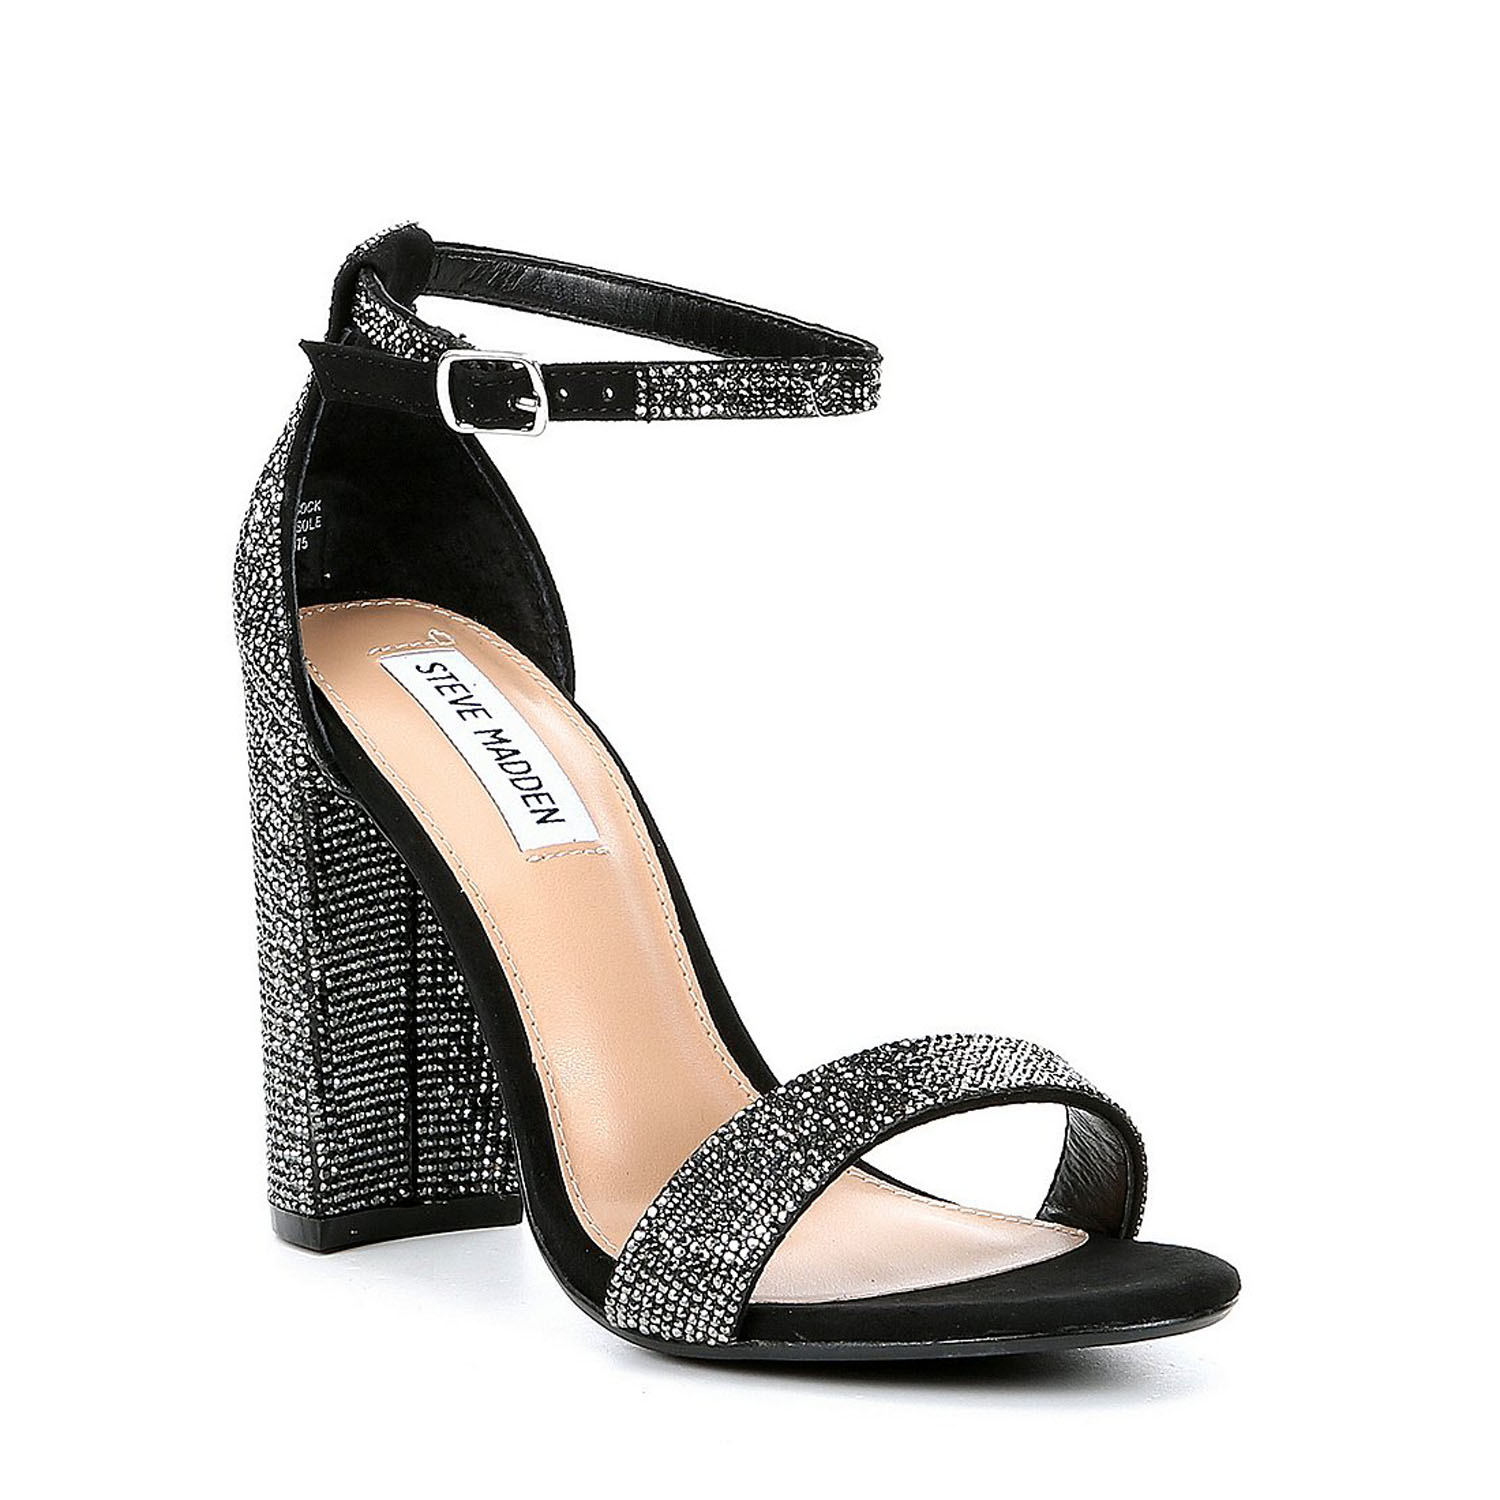 6de25a51c0a Stand tall and sparkle in the latest take on the beloved CARRSON sandal!  Crystal-covered straps elevate the styles formerly basic silhouette